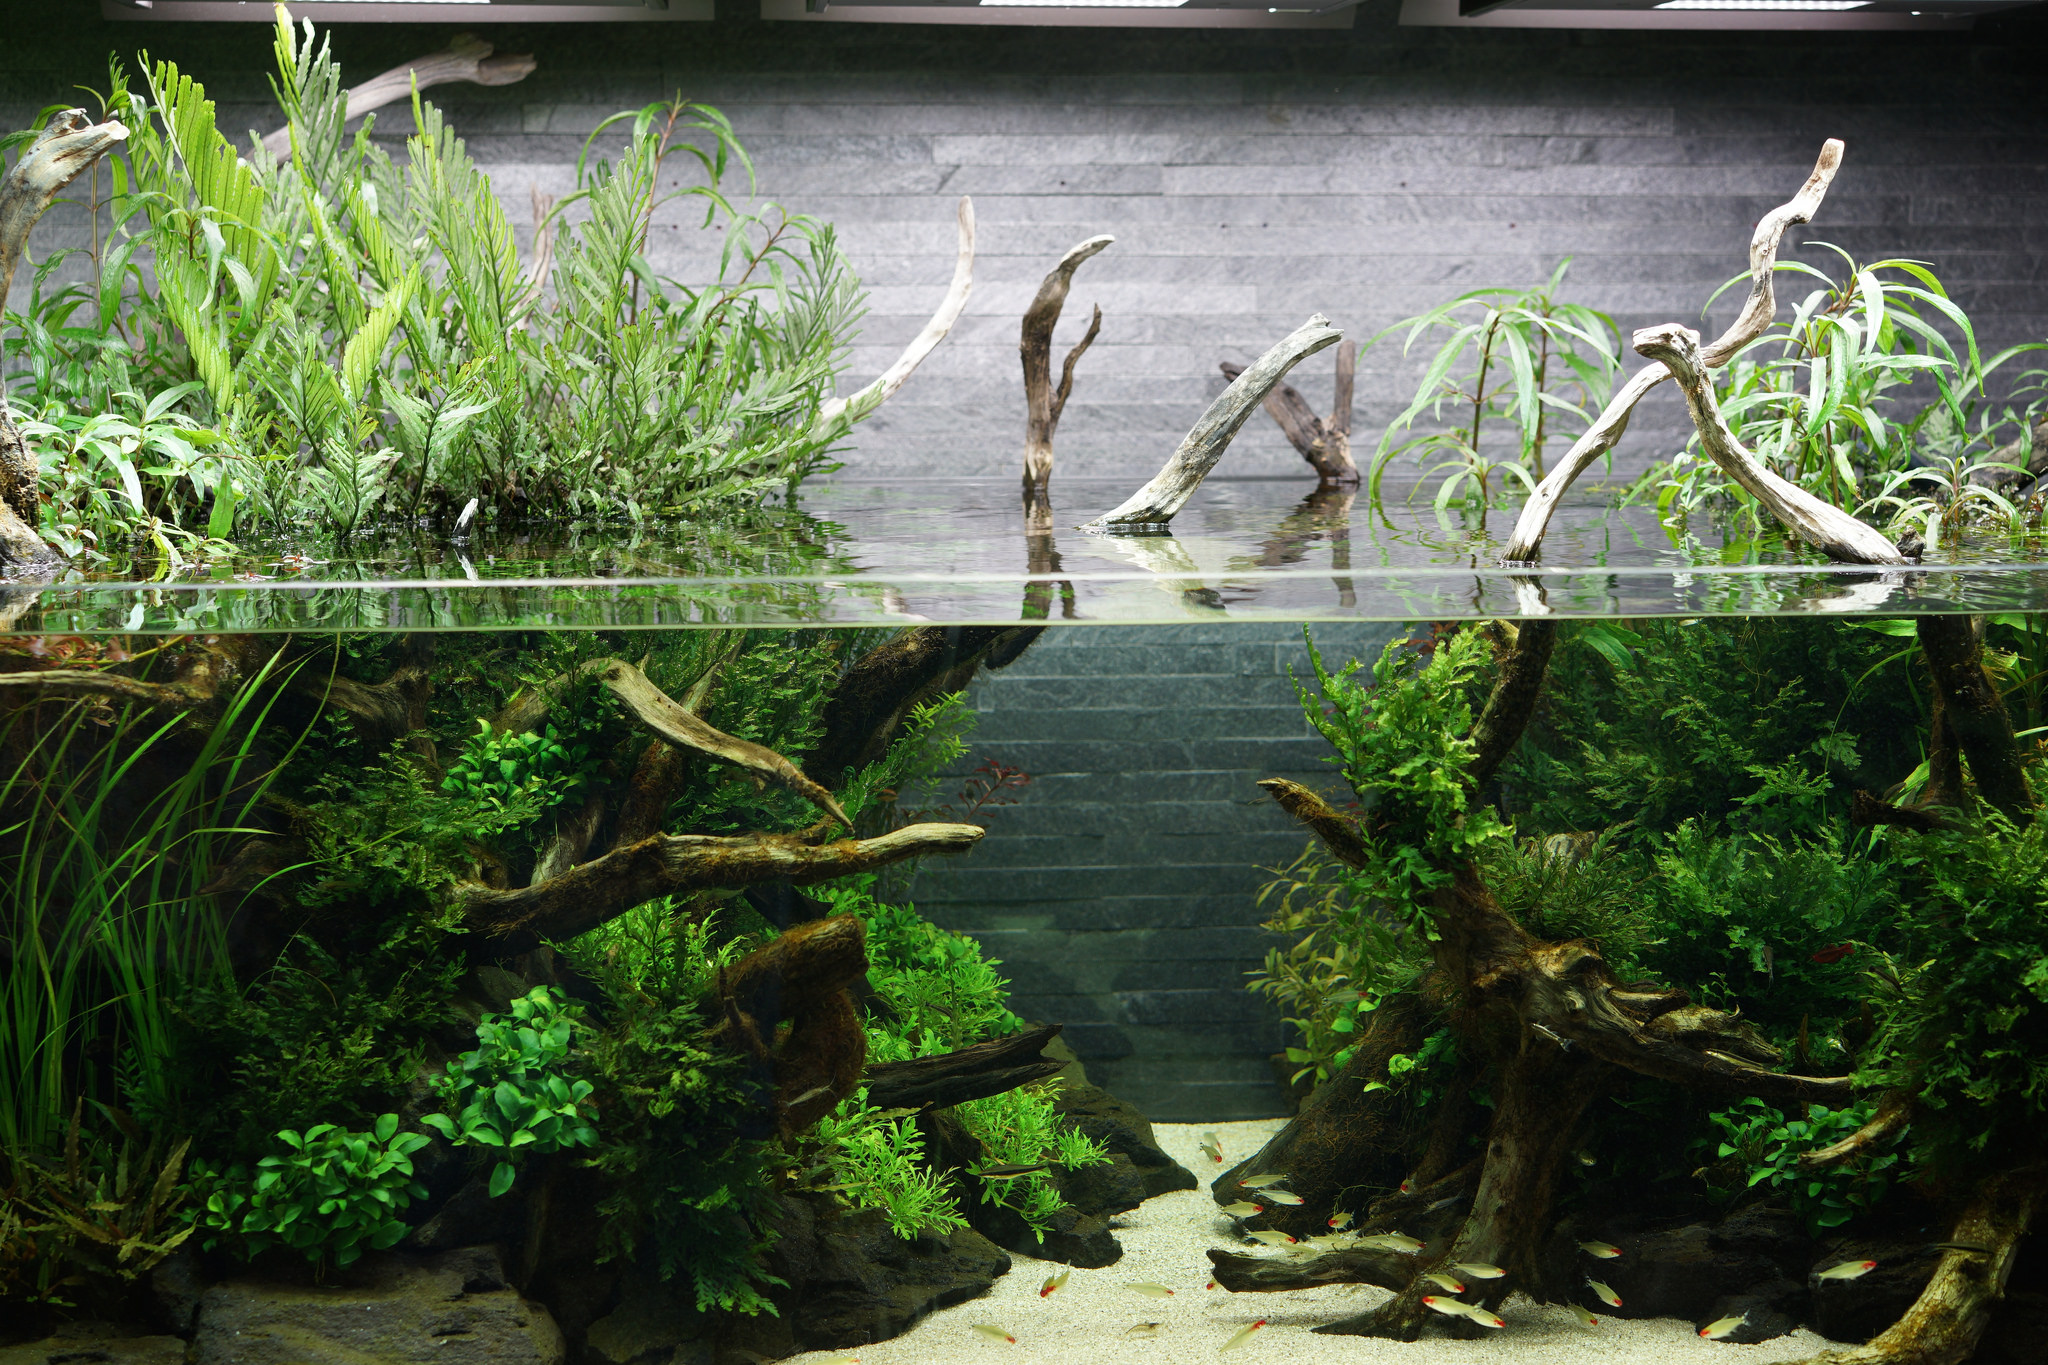 The Passing Of Aquascaping Legend Takashi Amano